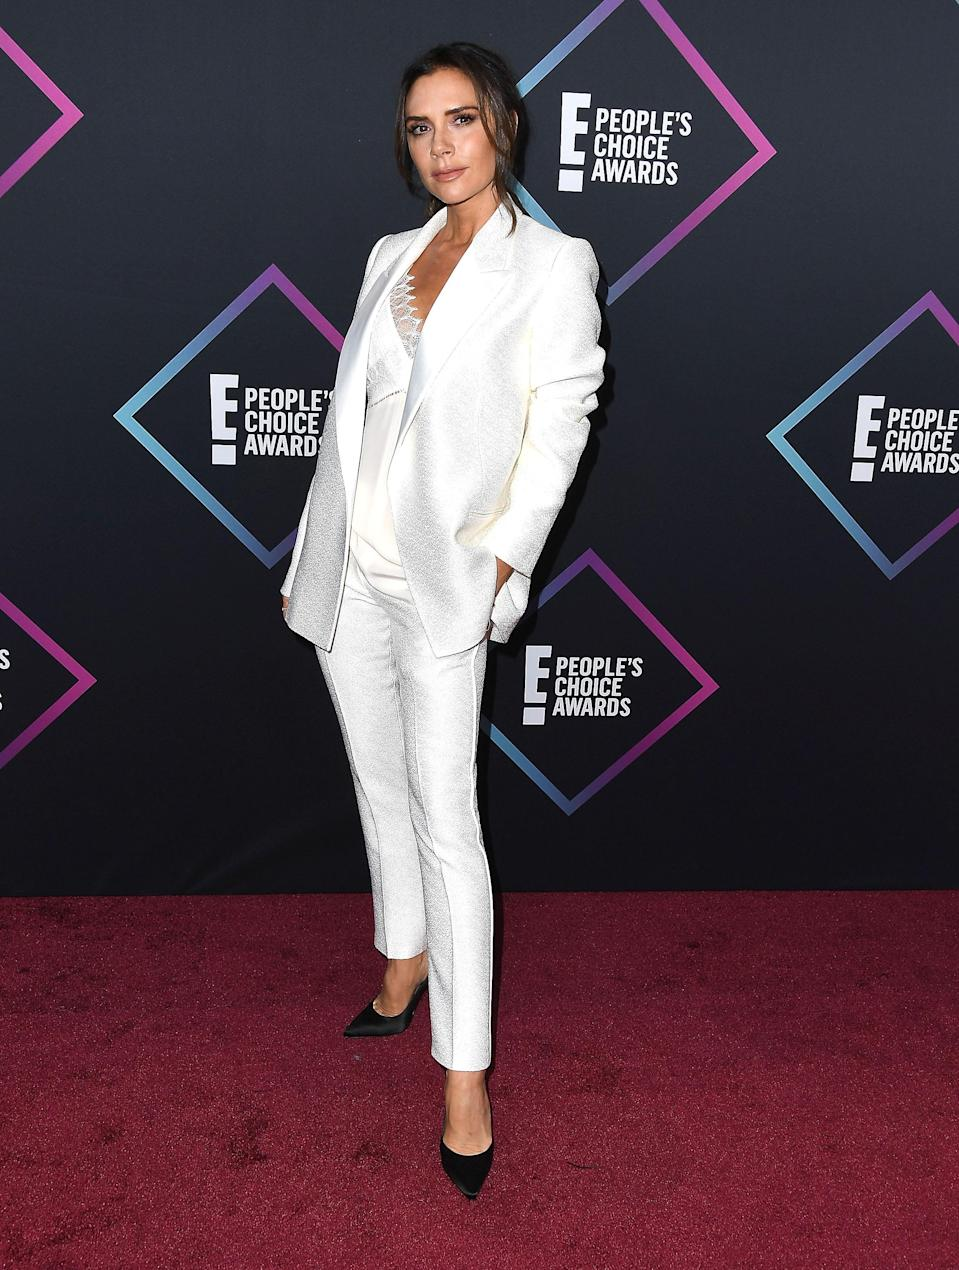 <p>Victoria Beckham wore a white suit from her eponymous lavel while accepting the Fashion Icon Award at the People's Choice Awards 2018 at Barker Hangar in Santa Monica, California. <em>[Photo: Getty]</em> </p>